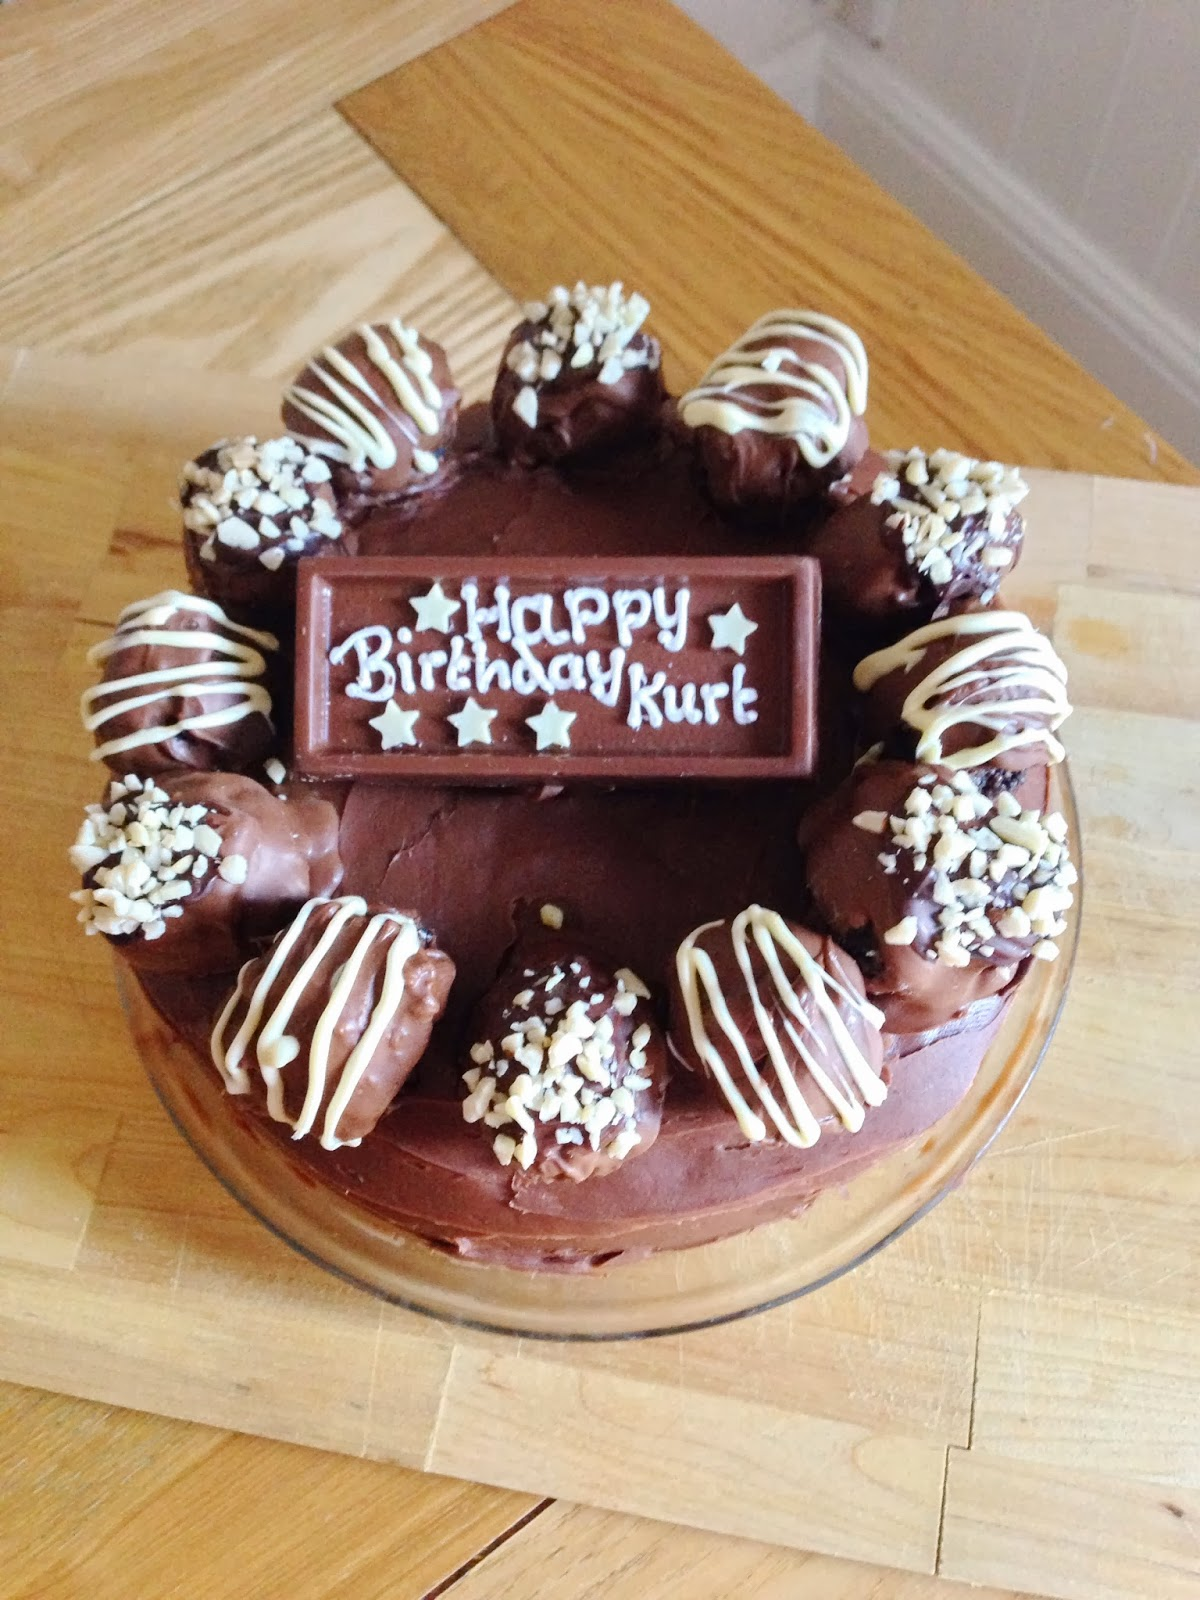 The Blonde Beauty Baker Jack Daniels Chocolate Cake With